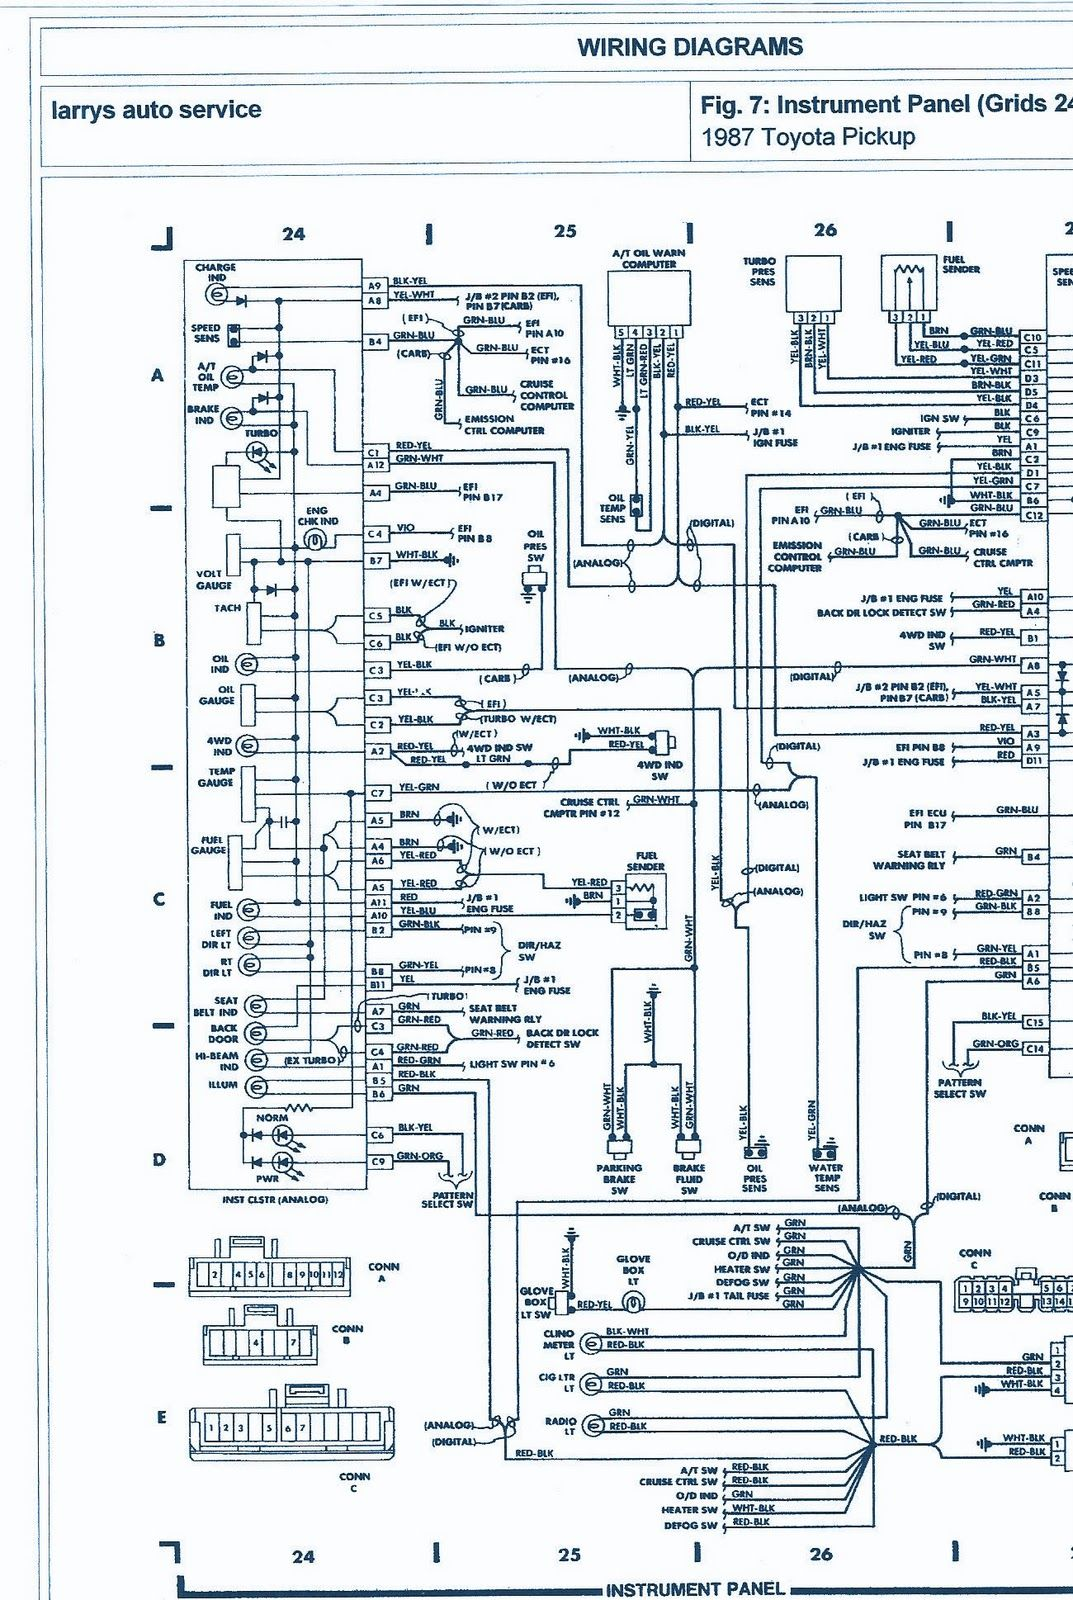 1993 Toyota truck electrical wiring diagram كهرب ياباني